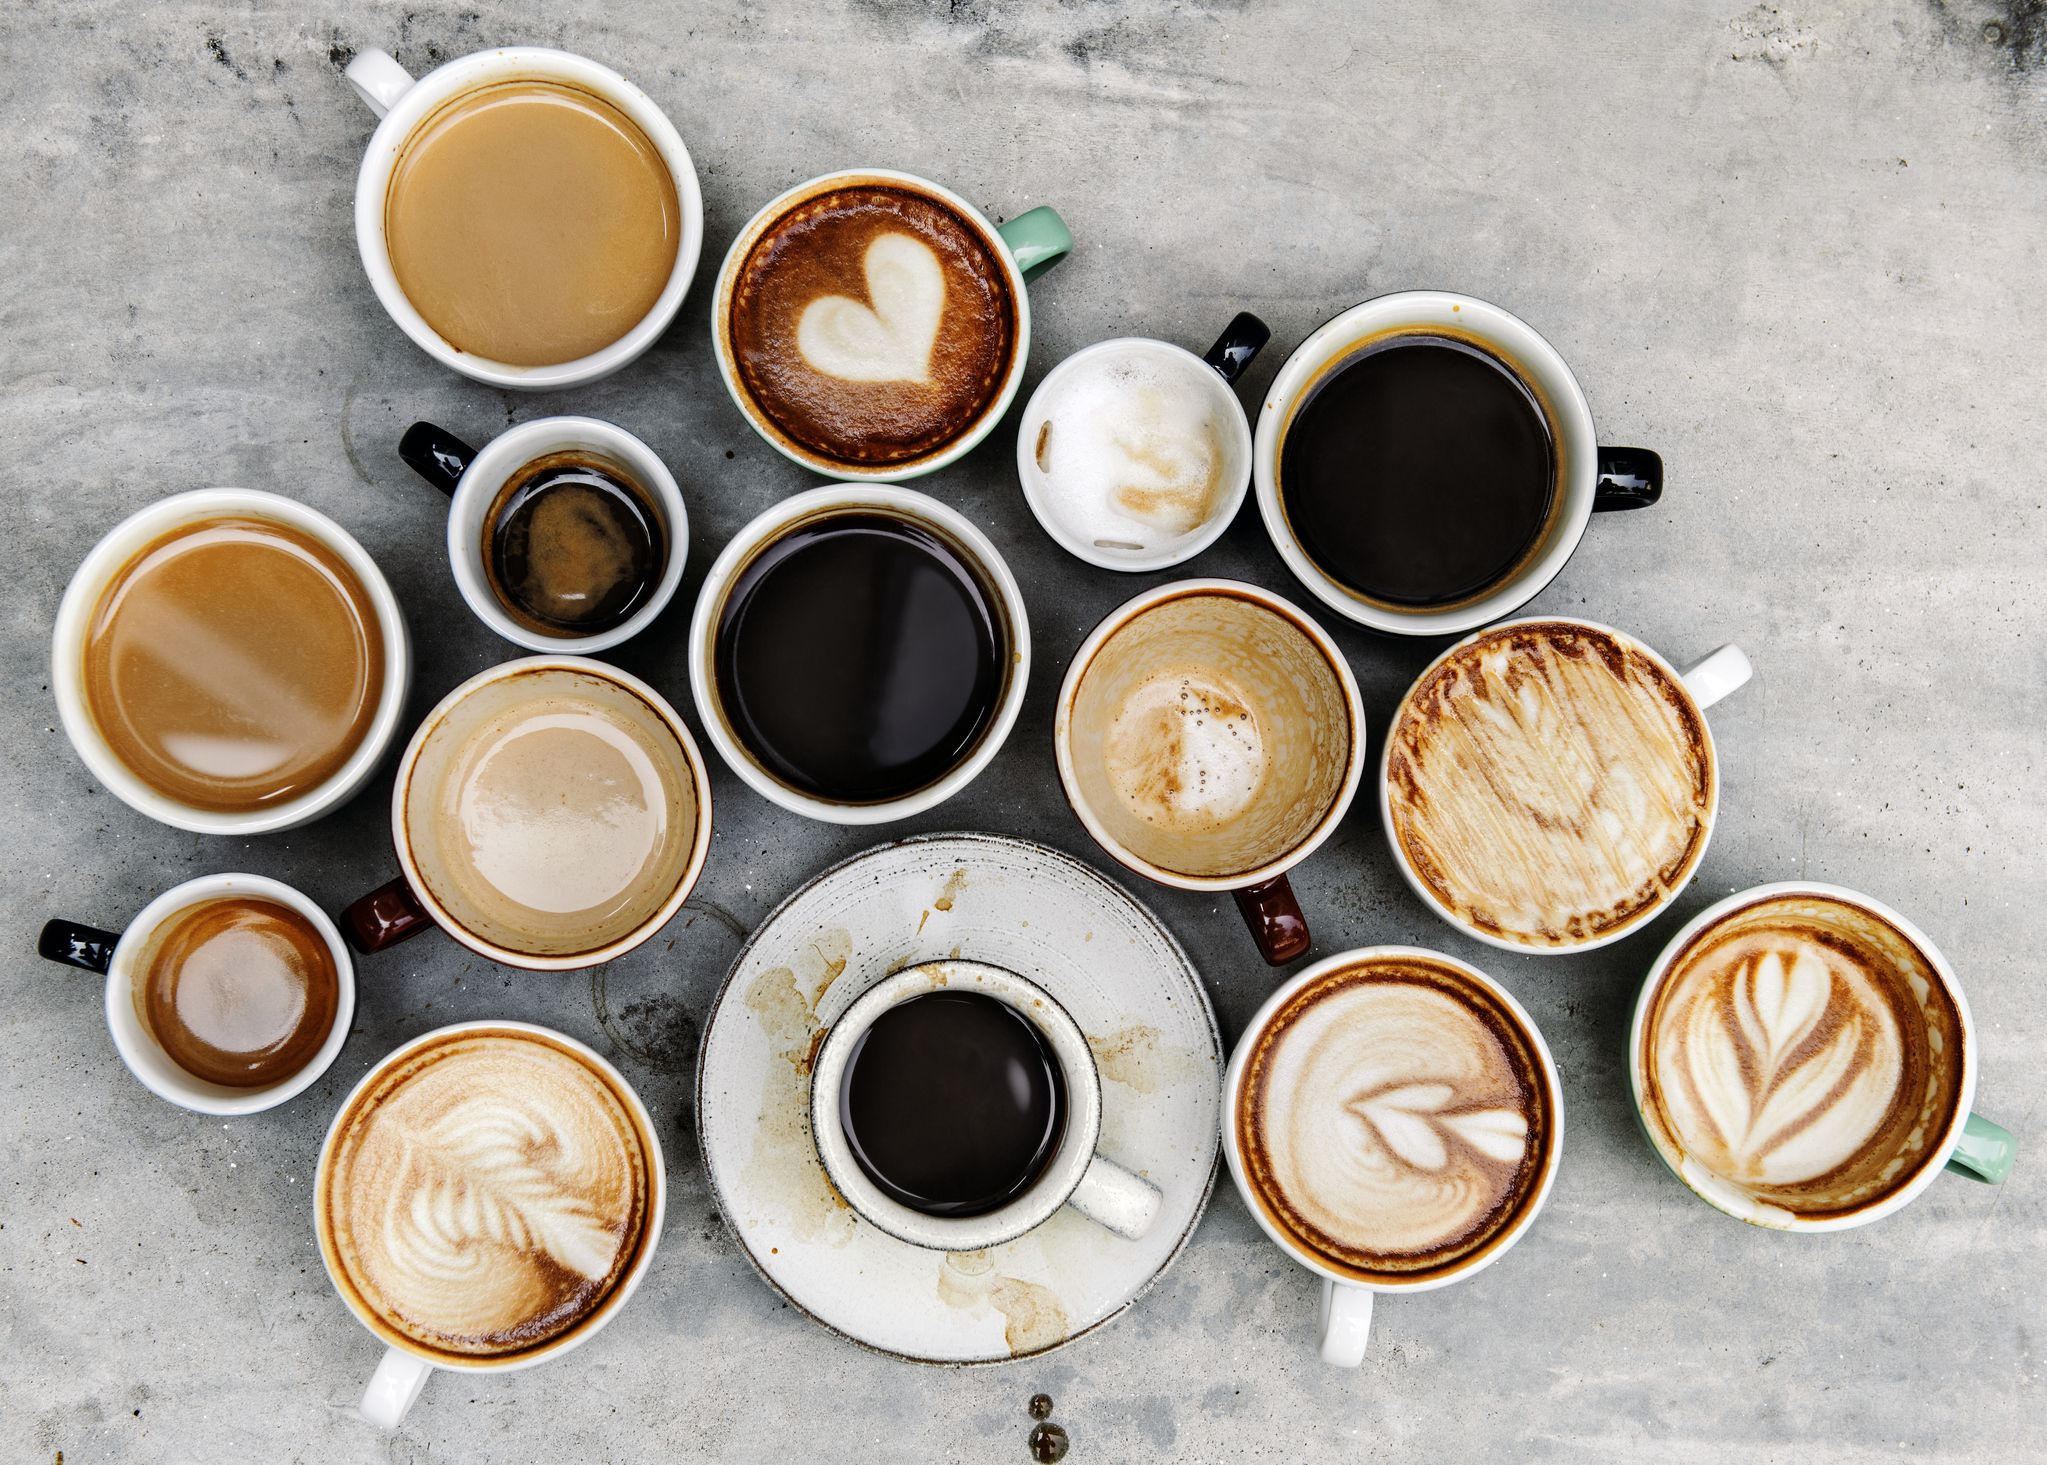 Here's Evidence That Even Heavy Coffee Drinkers Live Longer Than Non-Coffee Drinkers